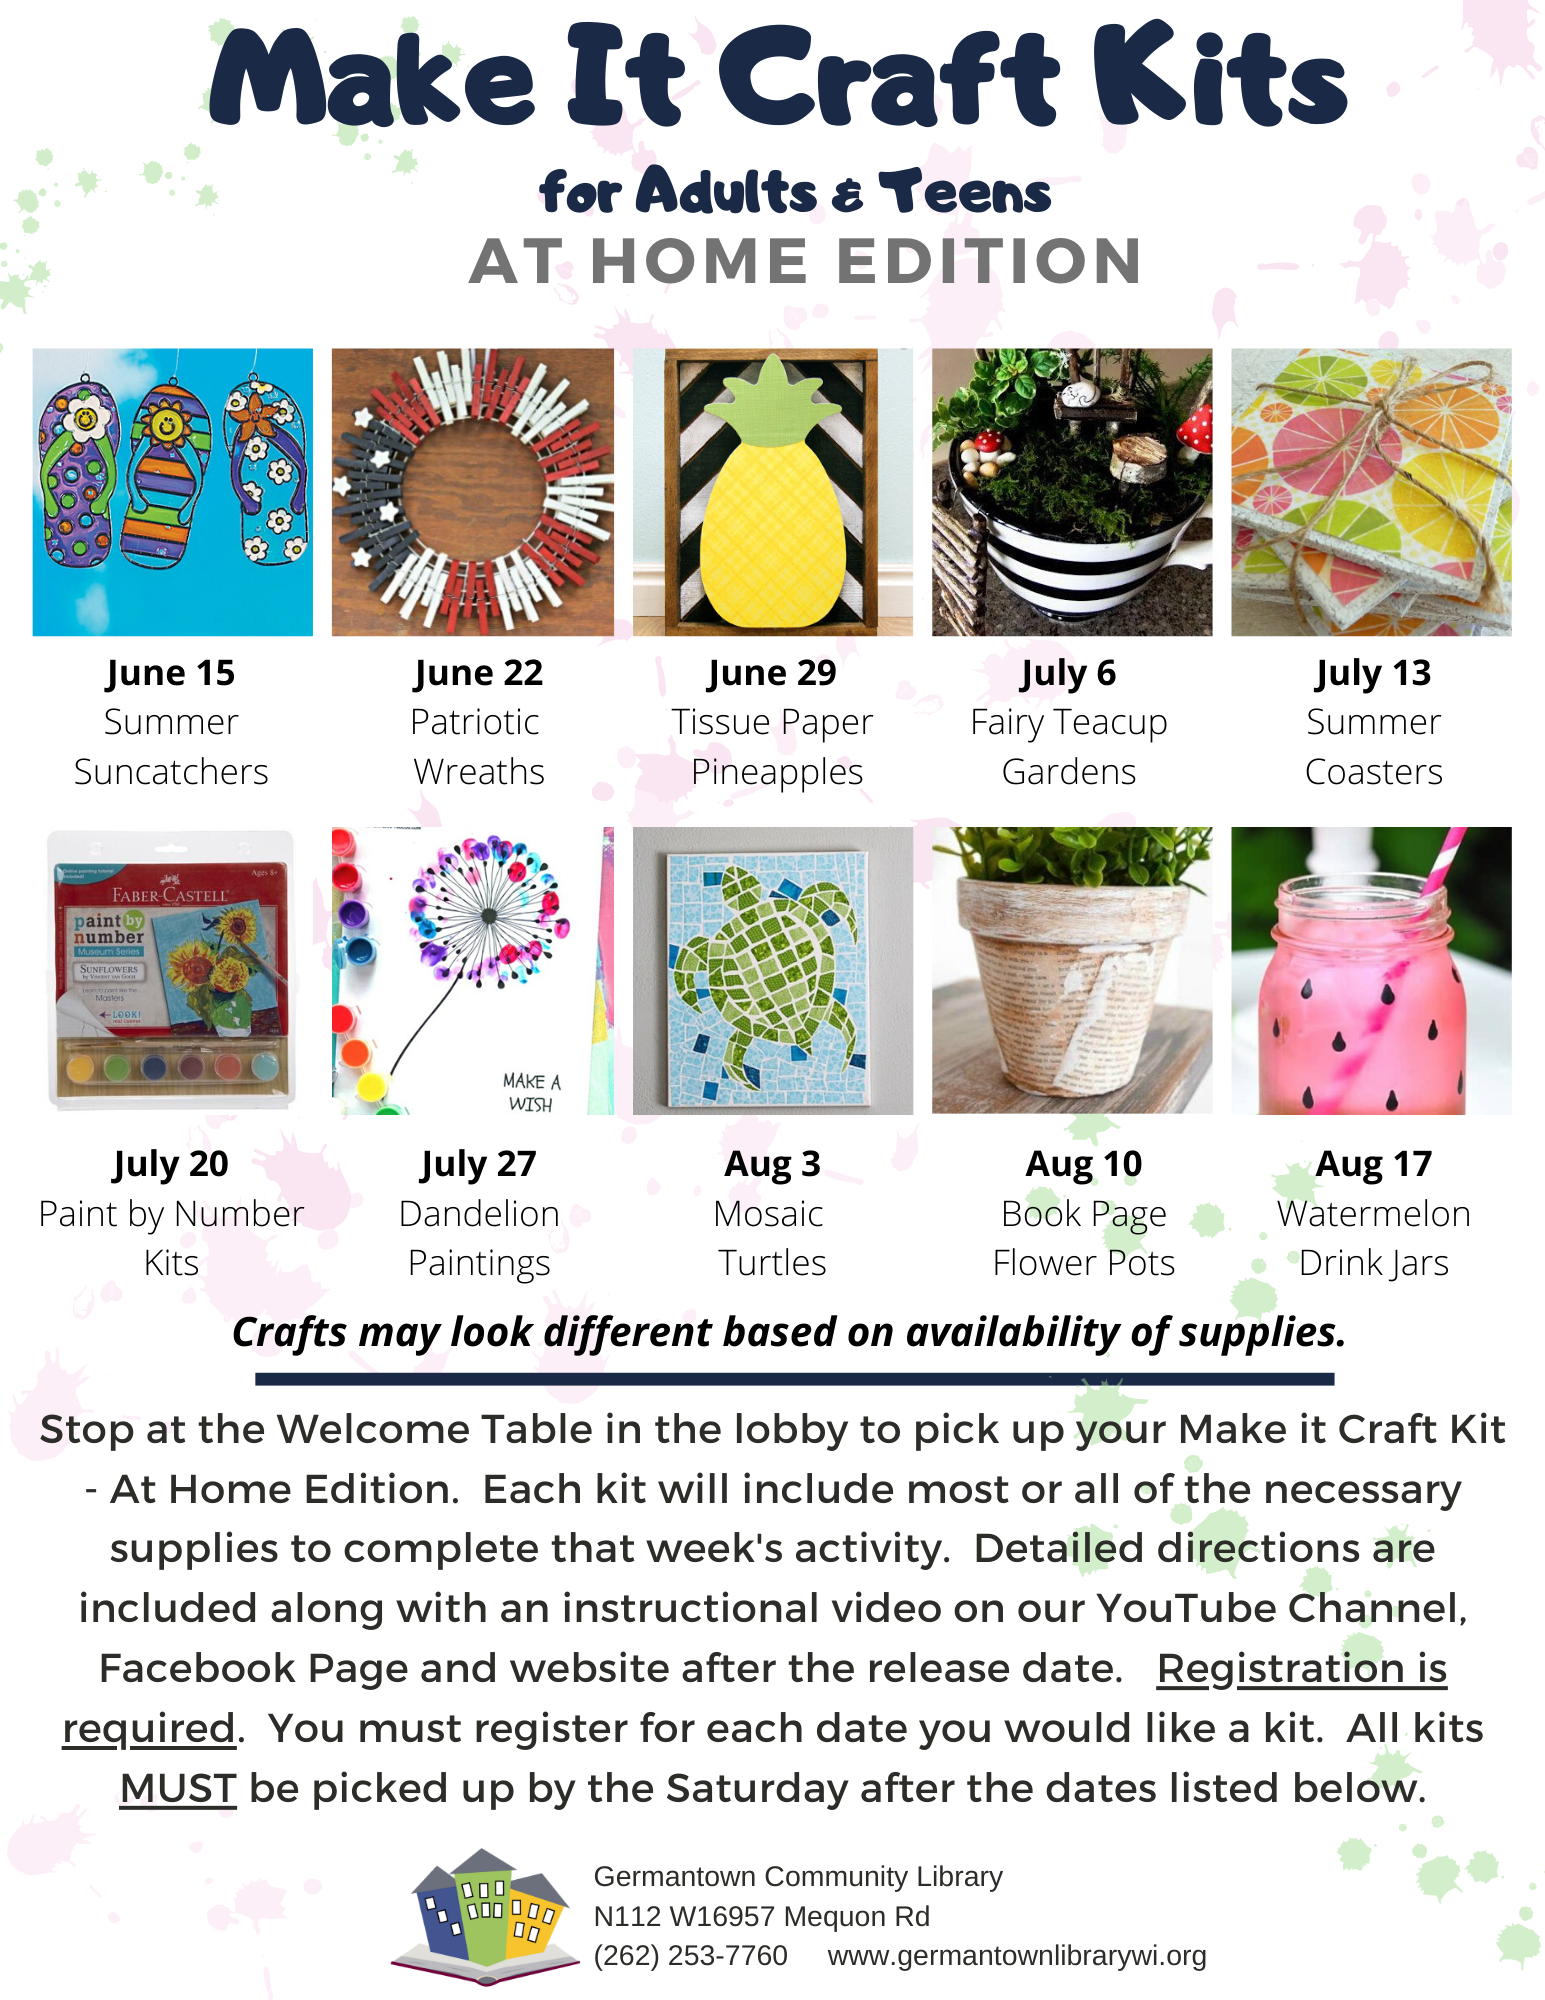 Make It Craft Kits - At Home Edition (Dandelion Painting)